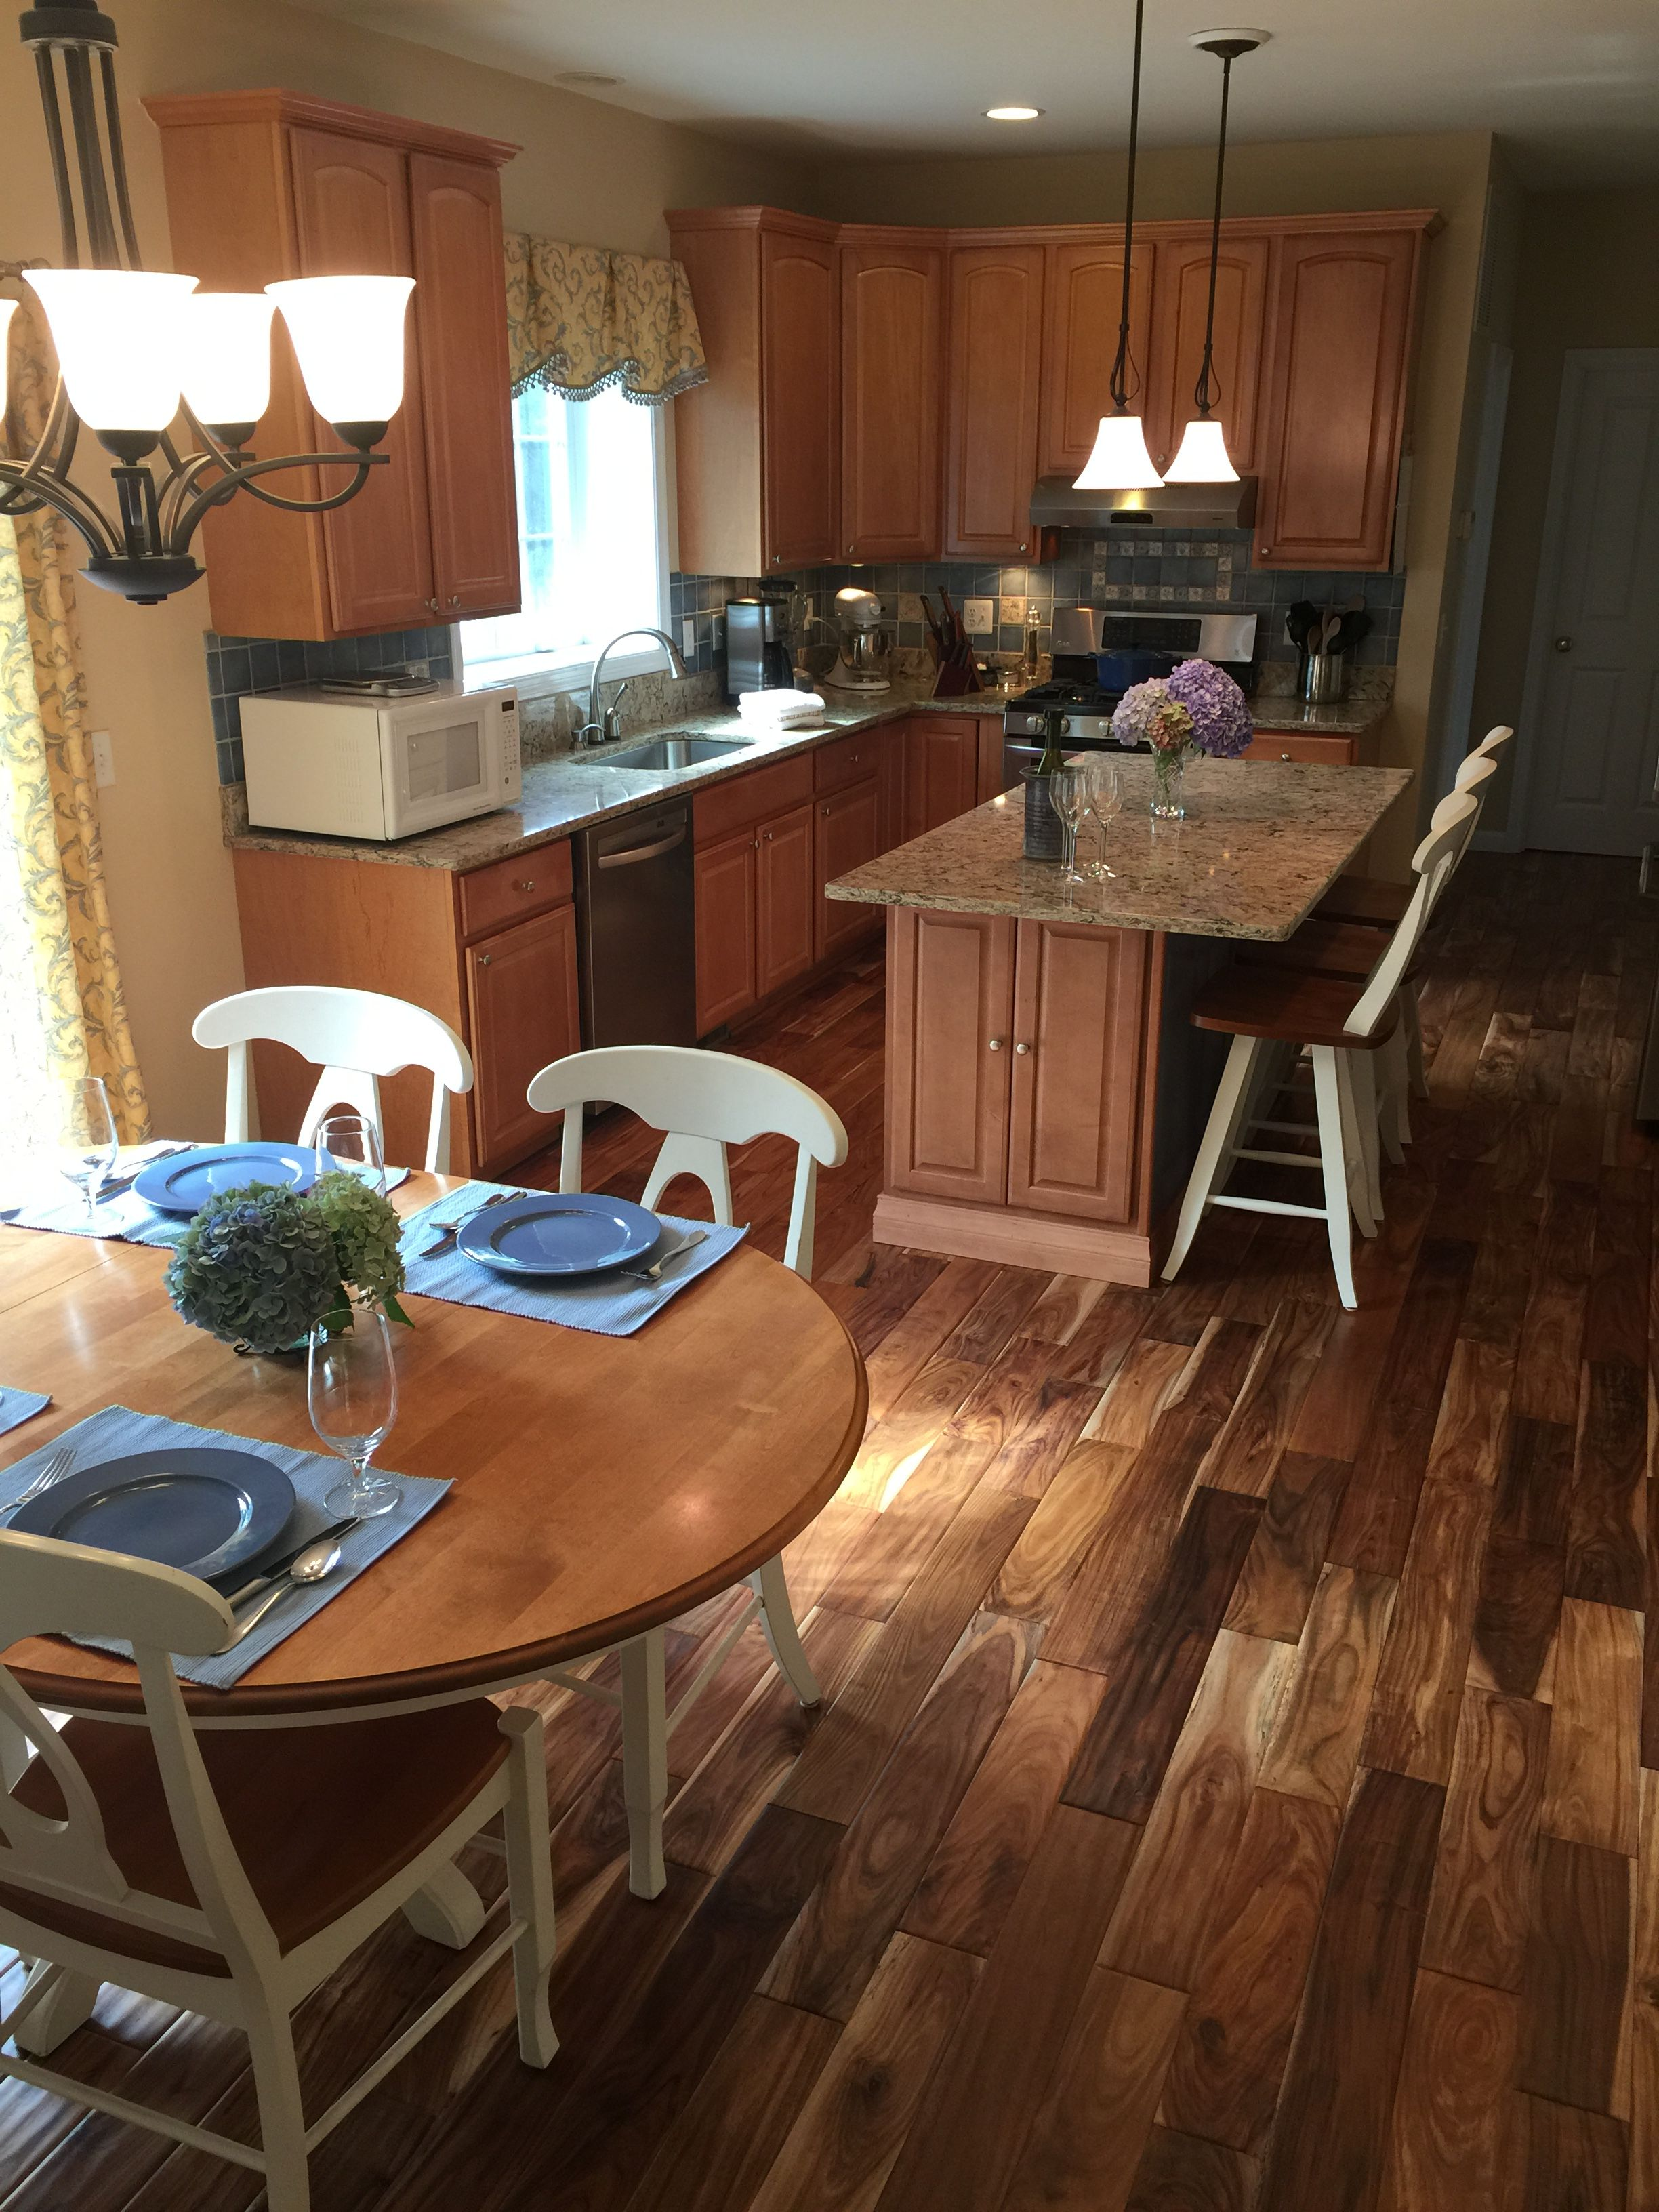 """#AFamilyFeast picked Tobacco Road Acacia for their kitchen makeover! Here's what they had to say: """"The team at our local Lumber Liquidators store was a wealth of knowledge and patiently answered all of our (many!) questions throughout the entire project.  Don't be shy about asking them for help!"""" More:  http://www.afamilyfeast.com/our-kitchen-makeover-after/"""